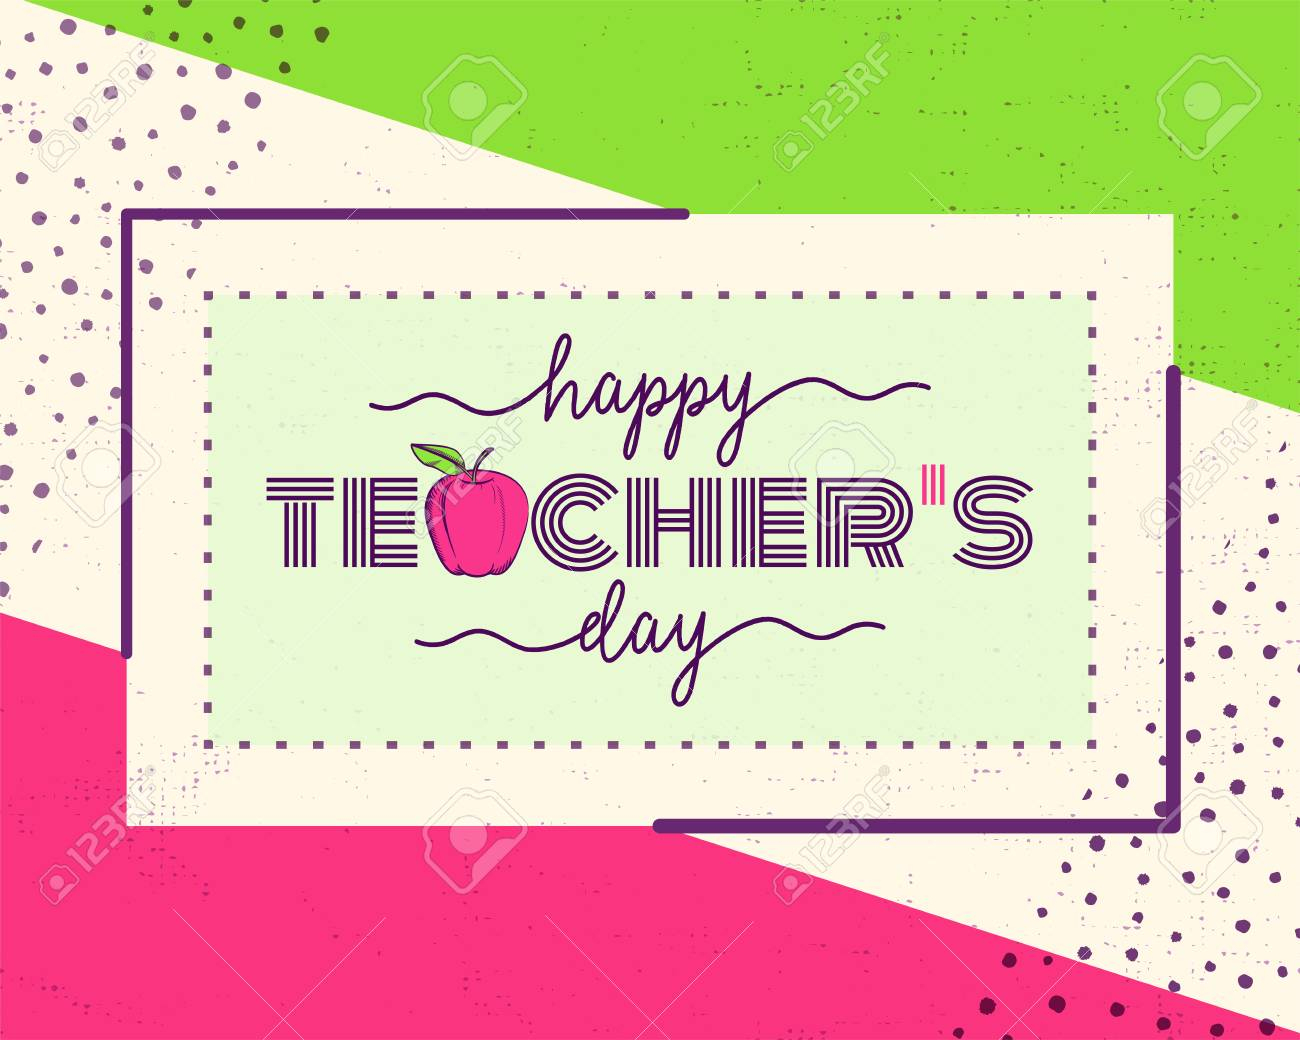 Vector Illustration Of Happy Teachers Day. Greeting Design For - Free Printable Teacher's Day Greeting Cards